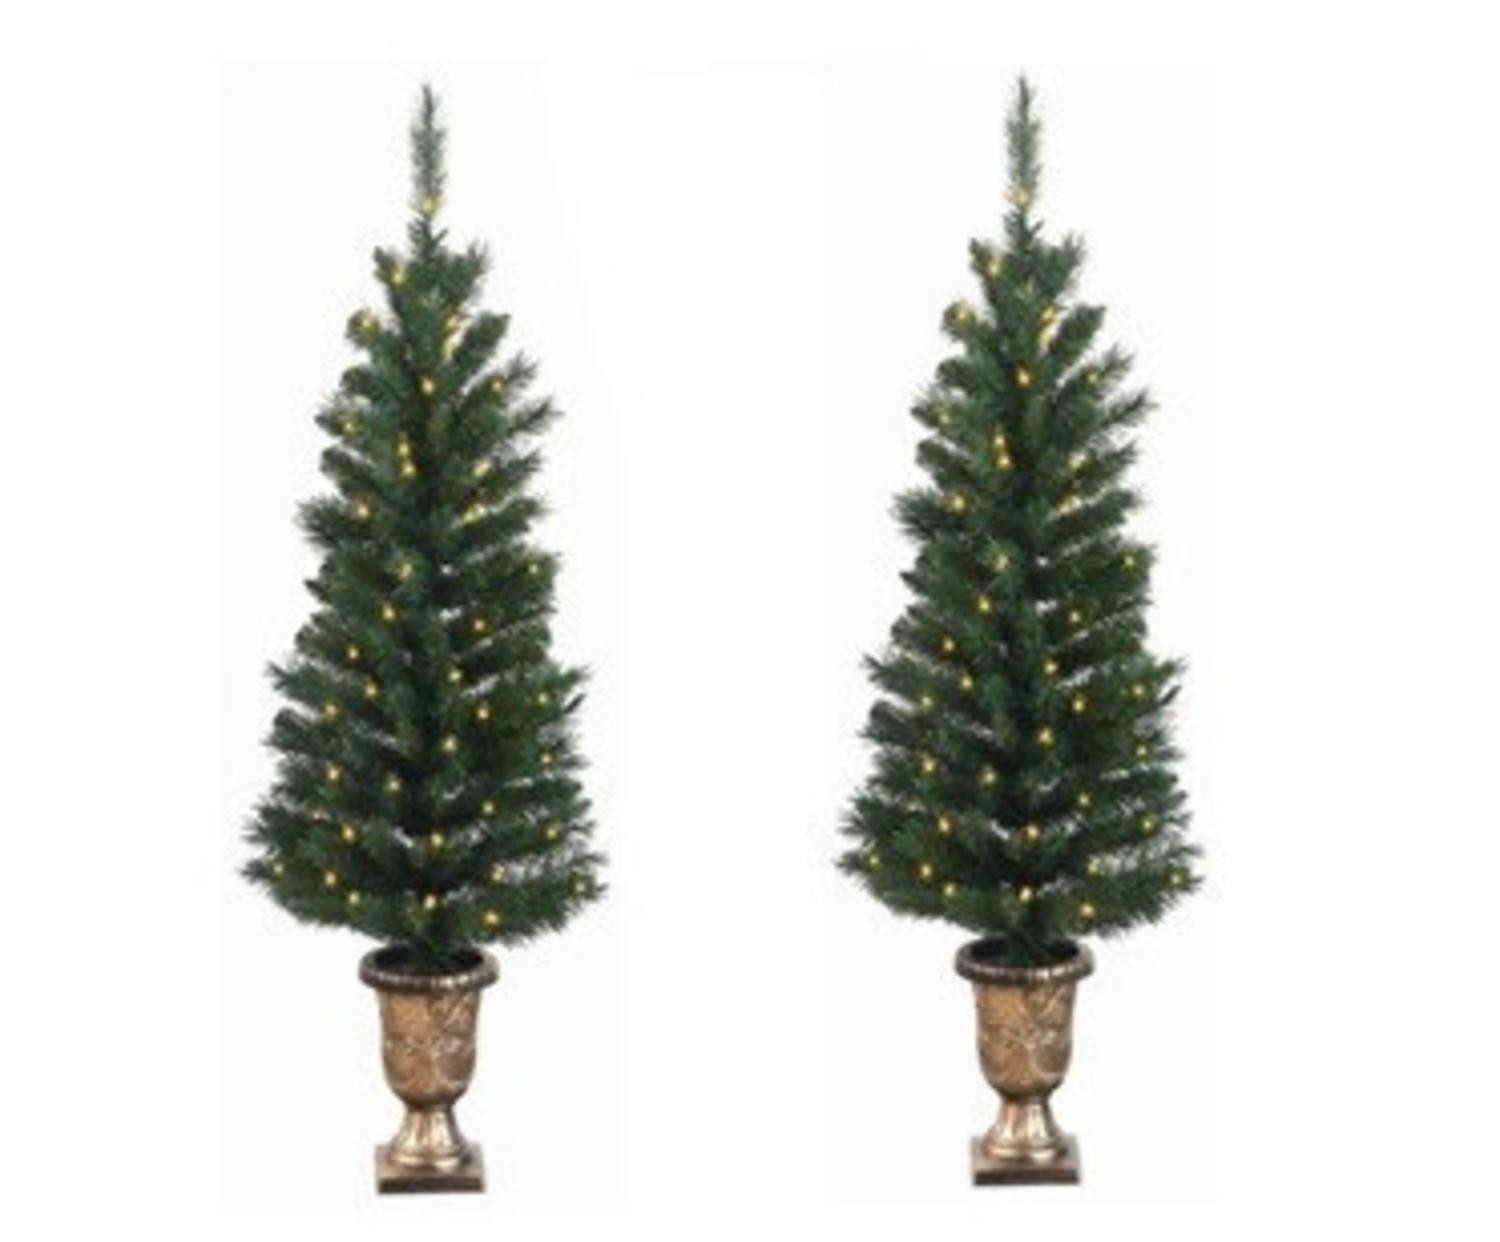 Pre Lit Porch Christmas Trees  Pack of 2 Pre Lit Potted Porch Pine Artifical Christmas